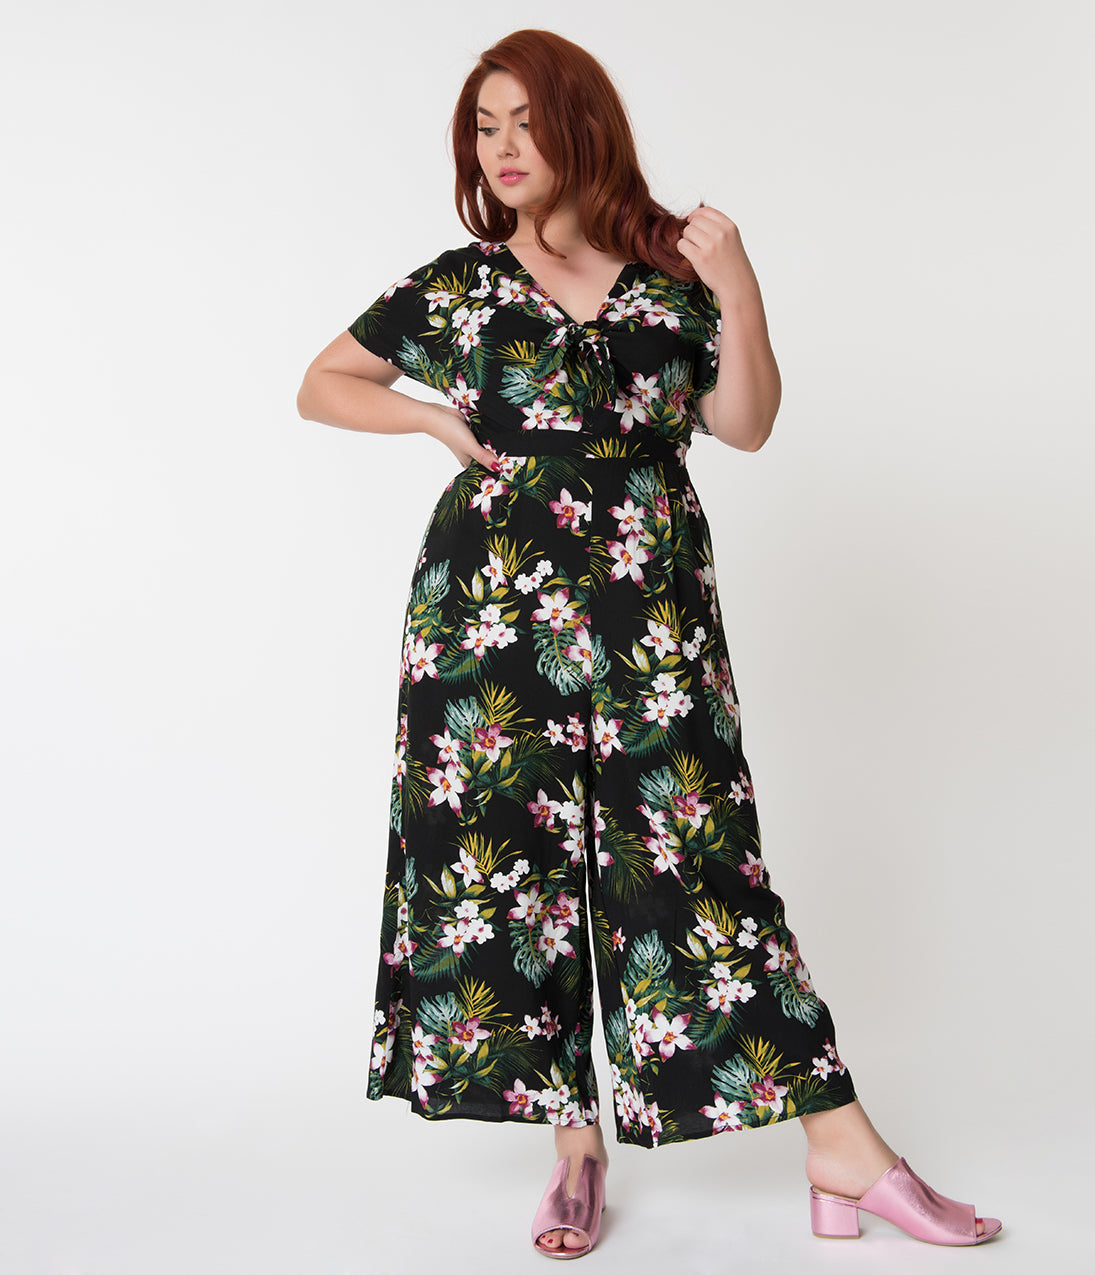 Vintage High Waisted Trousers, Sailor Pants, Jeans Retro Style Plus Size Black Tropical Print Wide Leg Jumpsuit $58.00 AT vintagedancer.com